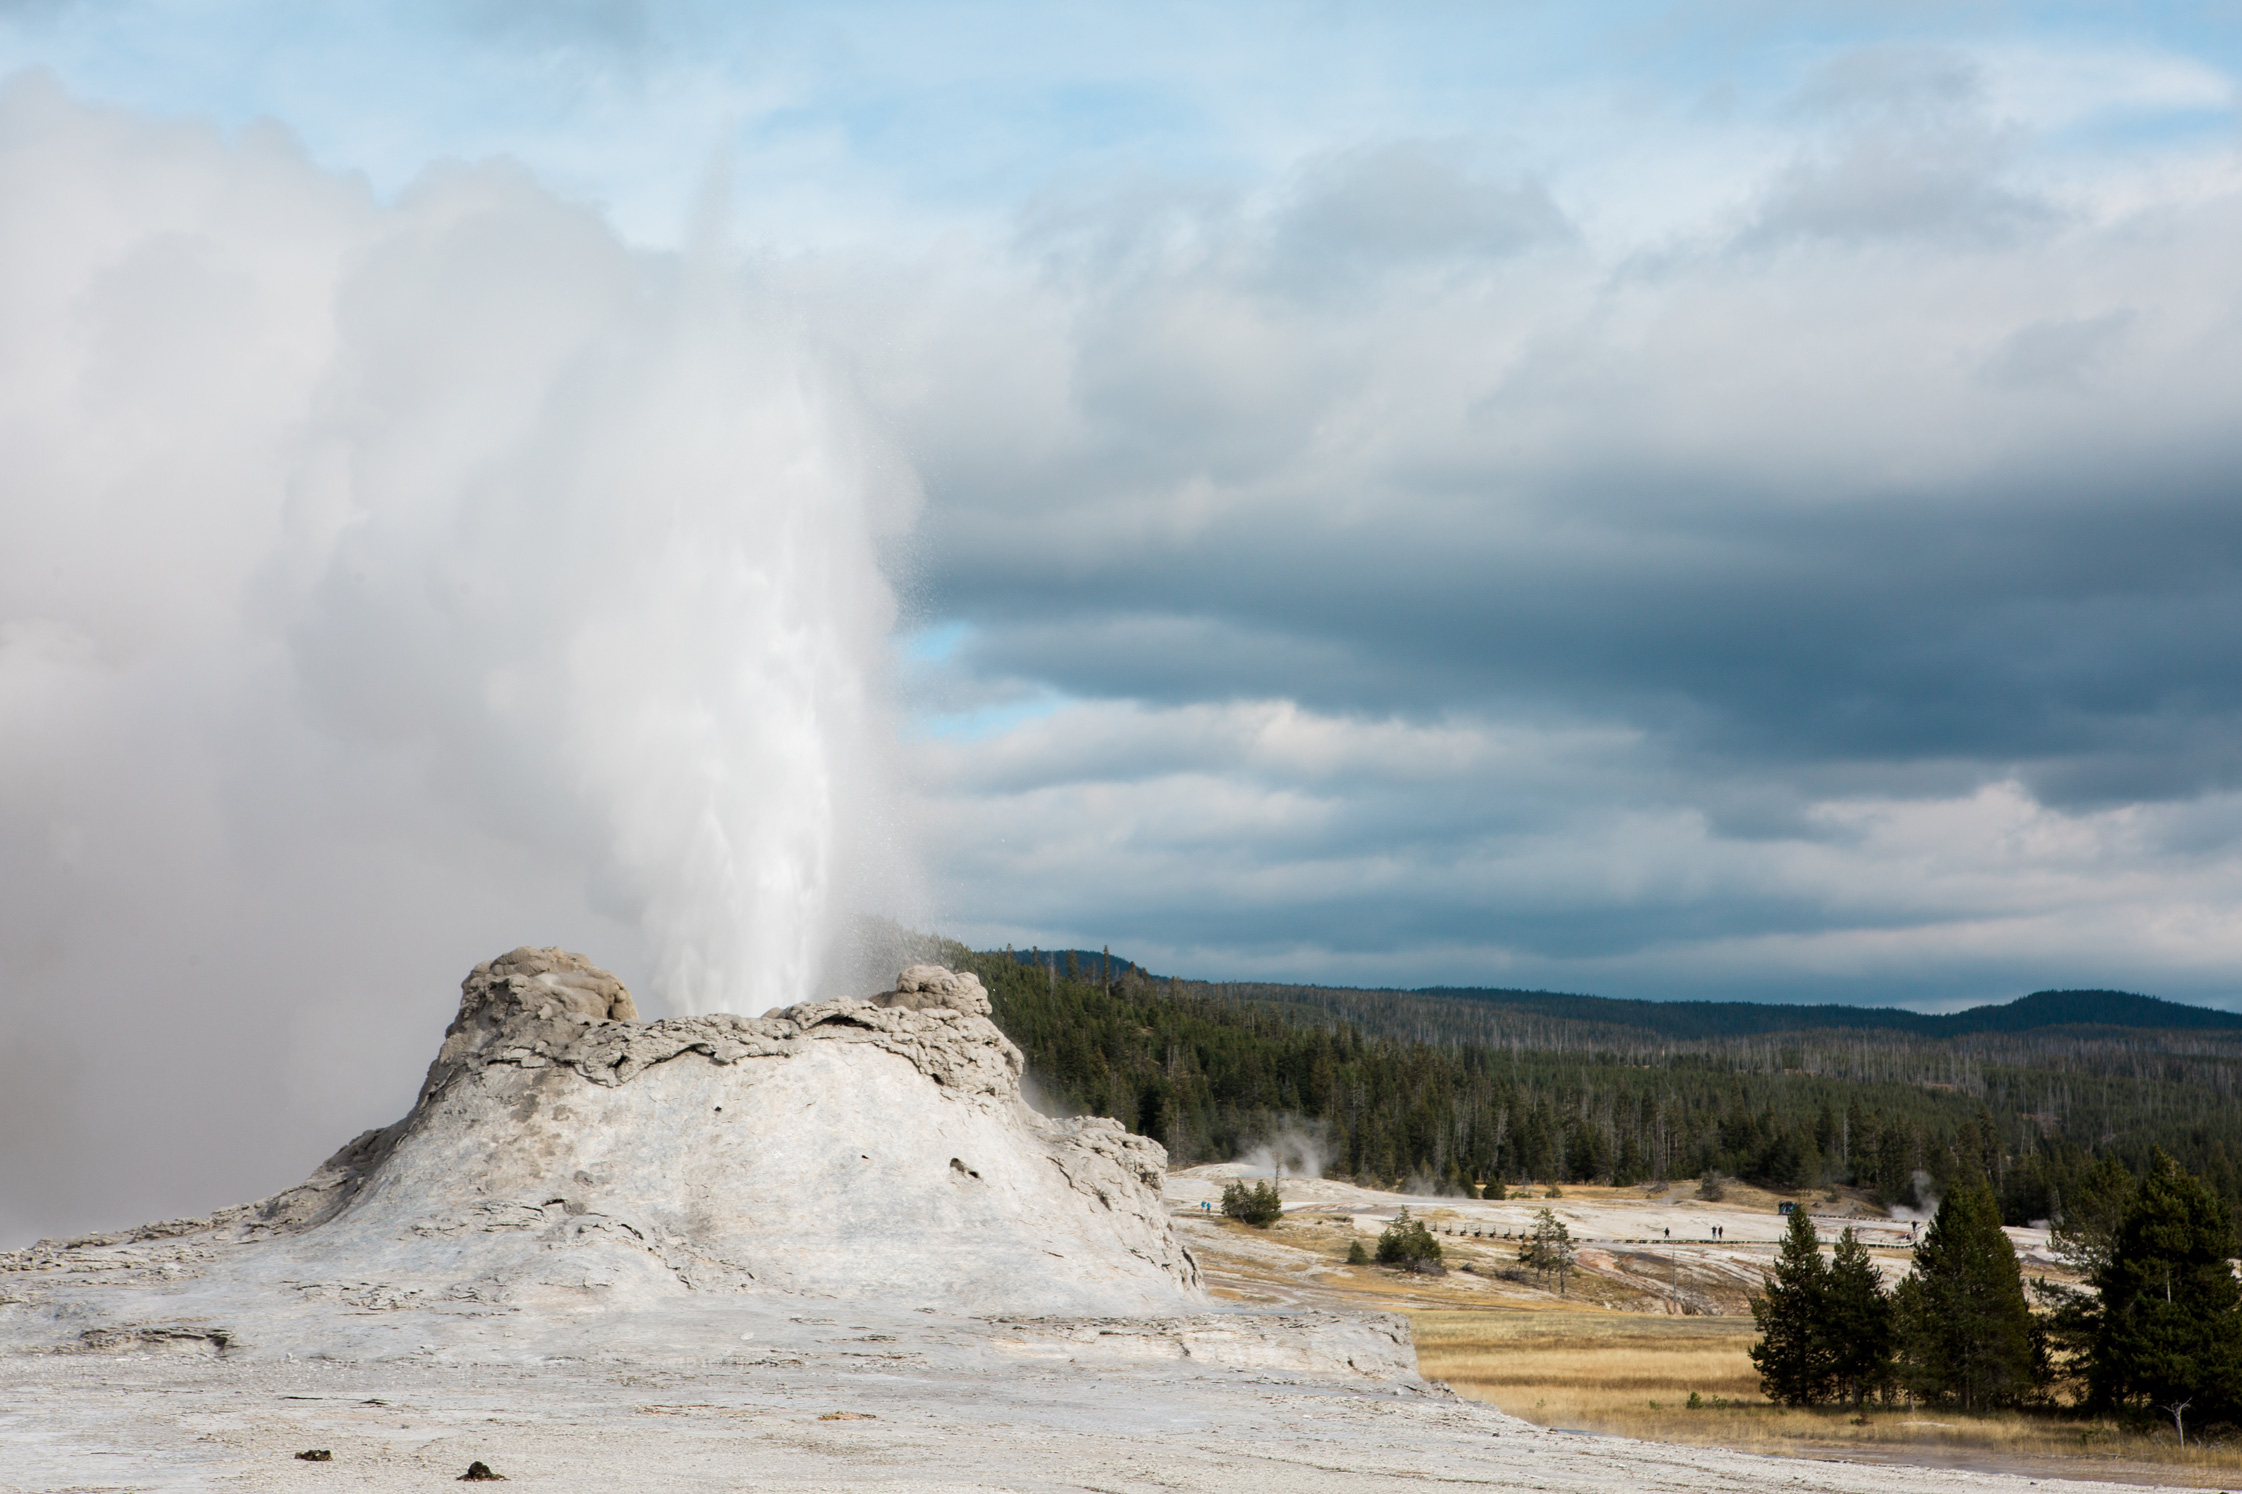 CindyGiovagnoli_road_trip_Yellowstone_National_Park_Montana_Wyoming_hot_springs_geyser_Old_Faithful_Grand_Prismatic-002.jpg